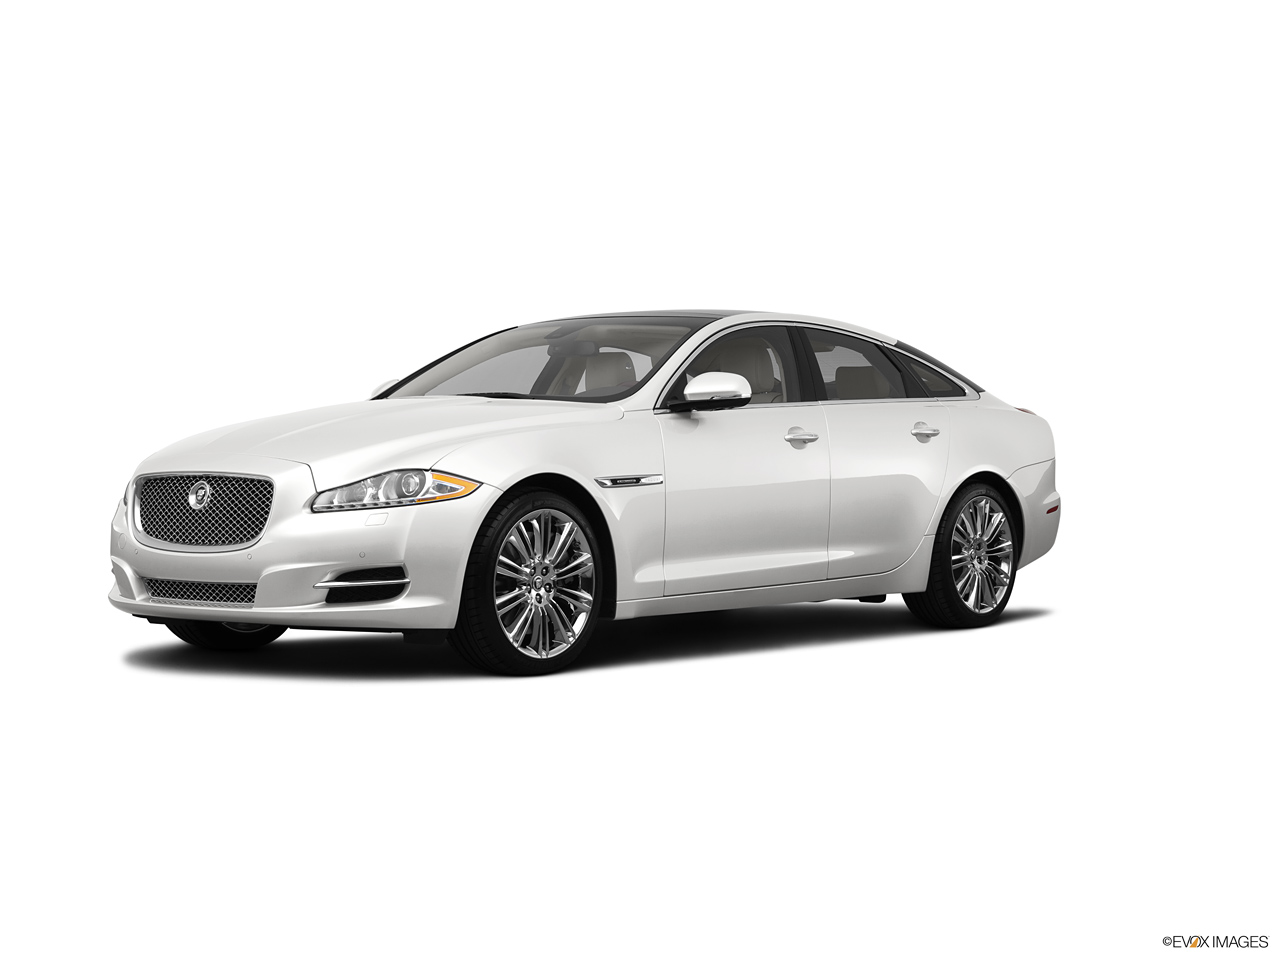 medium resolution of jaguar service by top rated mechanics at the convenience of your home or office